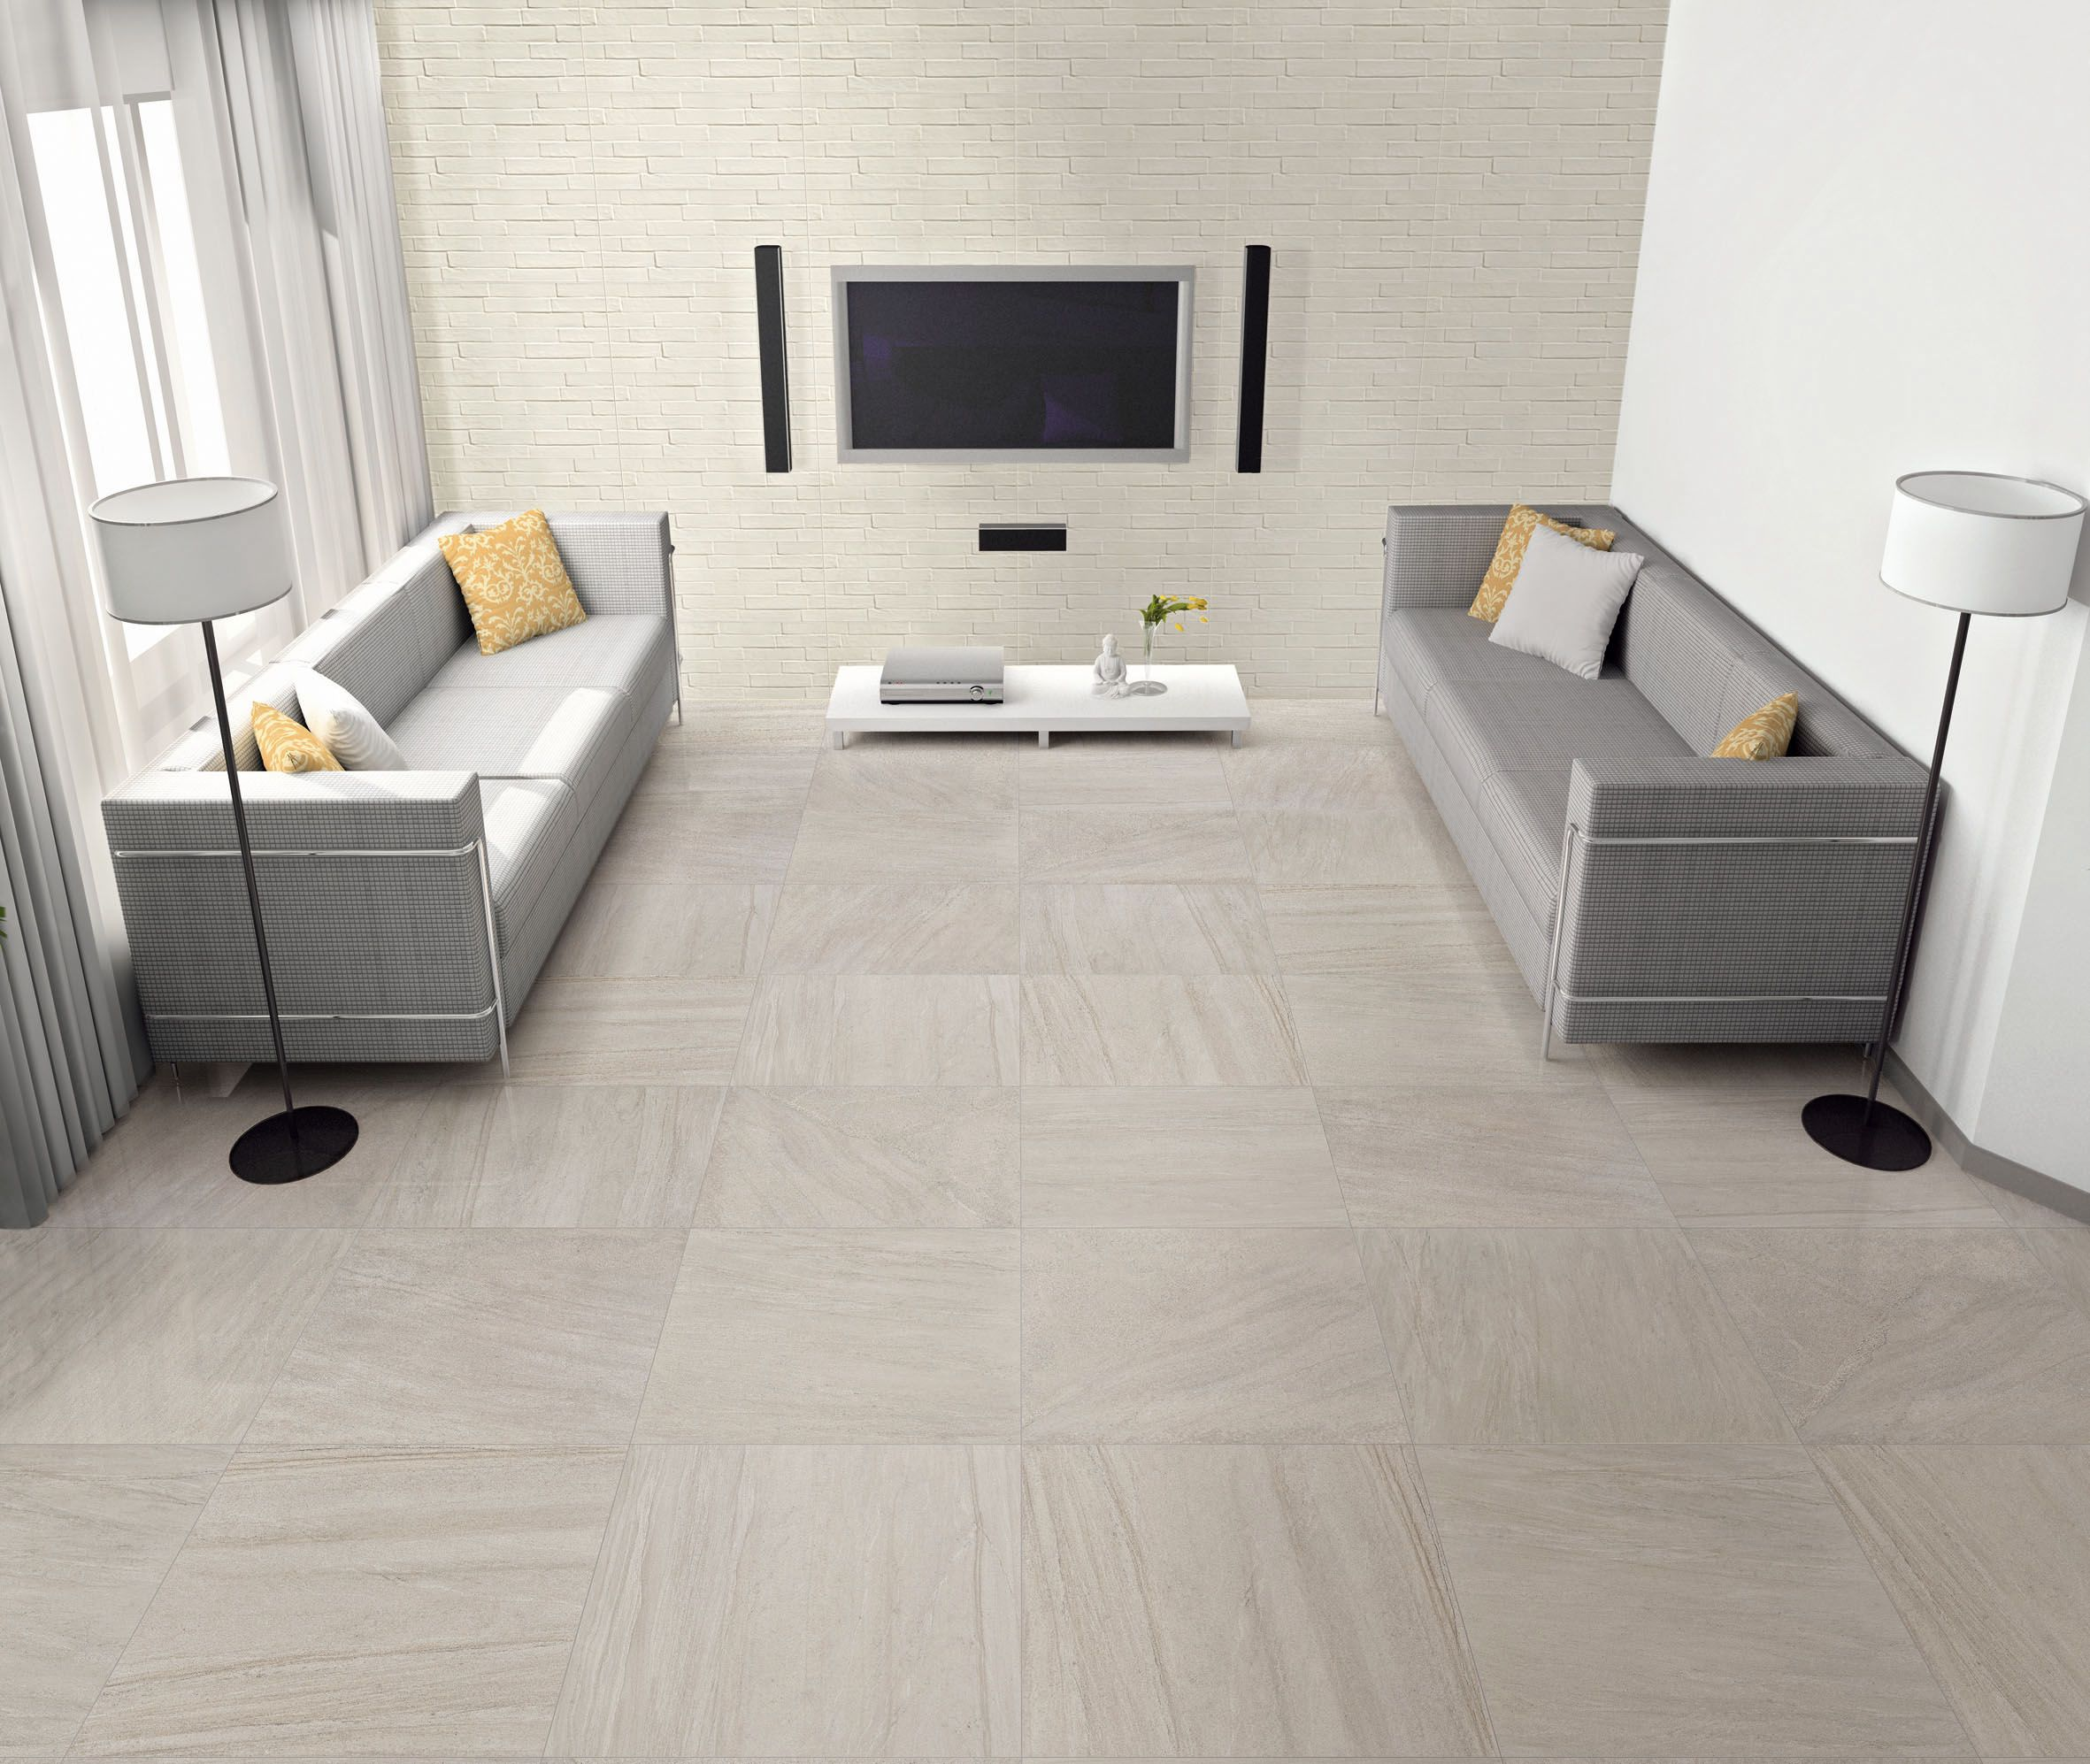 Purestone grigio nat 800x800 porcelain tile walls and floors purestone grigio nat 800x800 porcelain tile walls and floors also available in polished finish dailygadgetfo Image collections